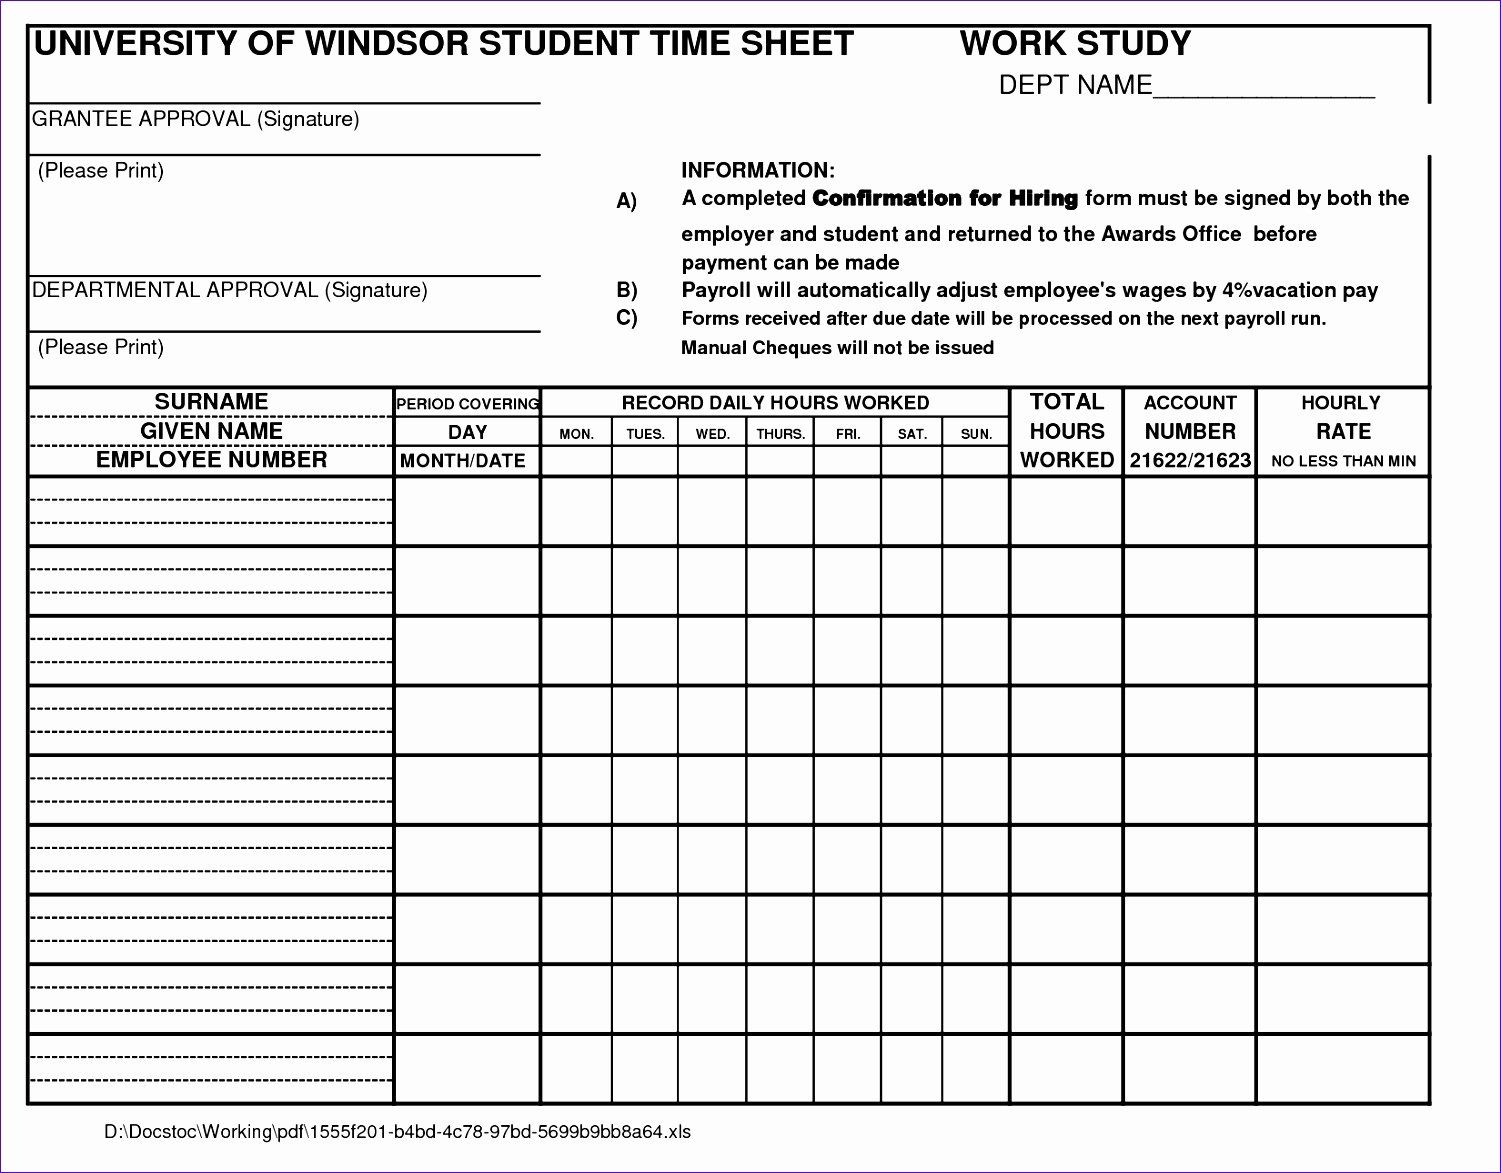 Employee Time Study Template Fresh 10 Time Motion Study